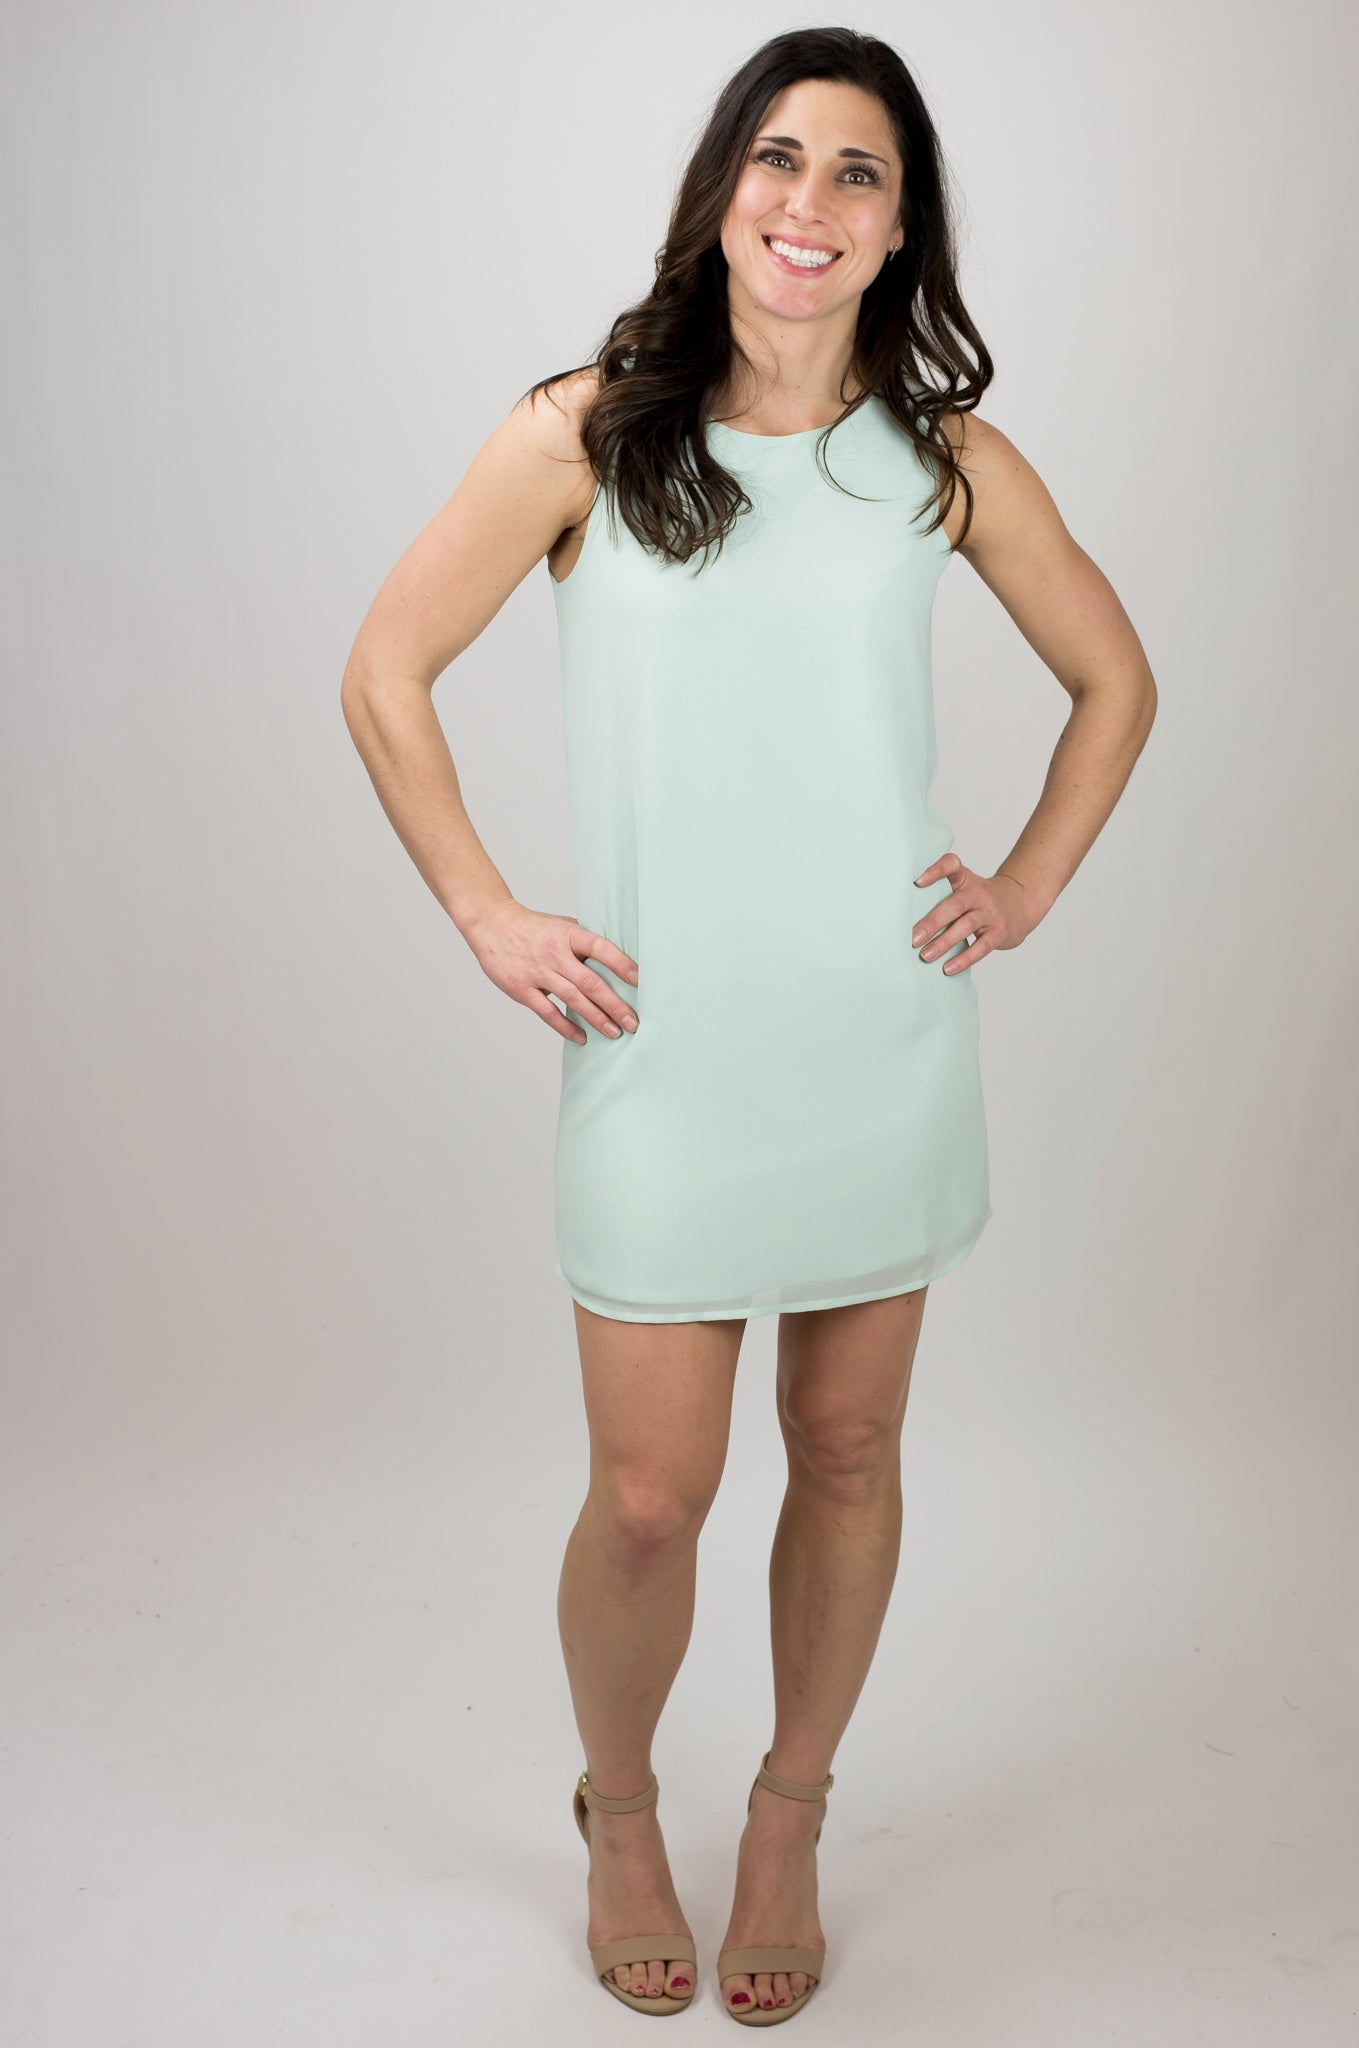 Northern Lights Fully Lined Tank Dress - Mint